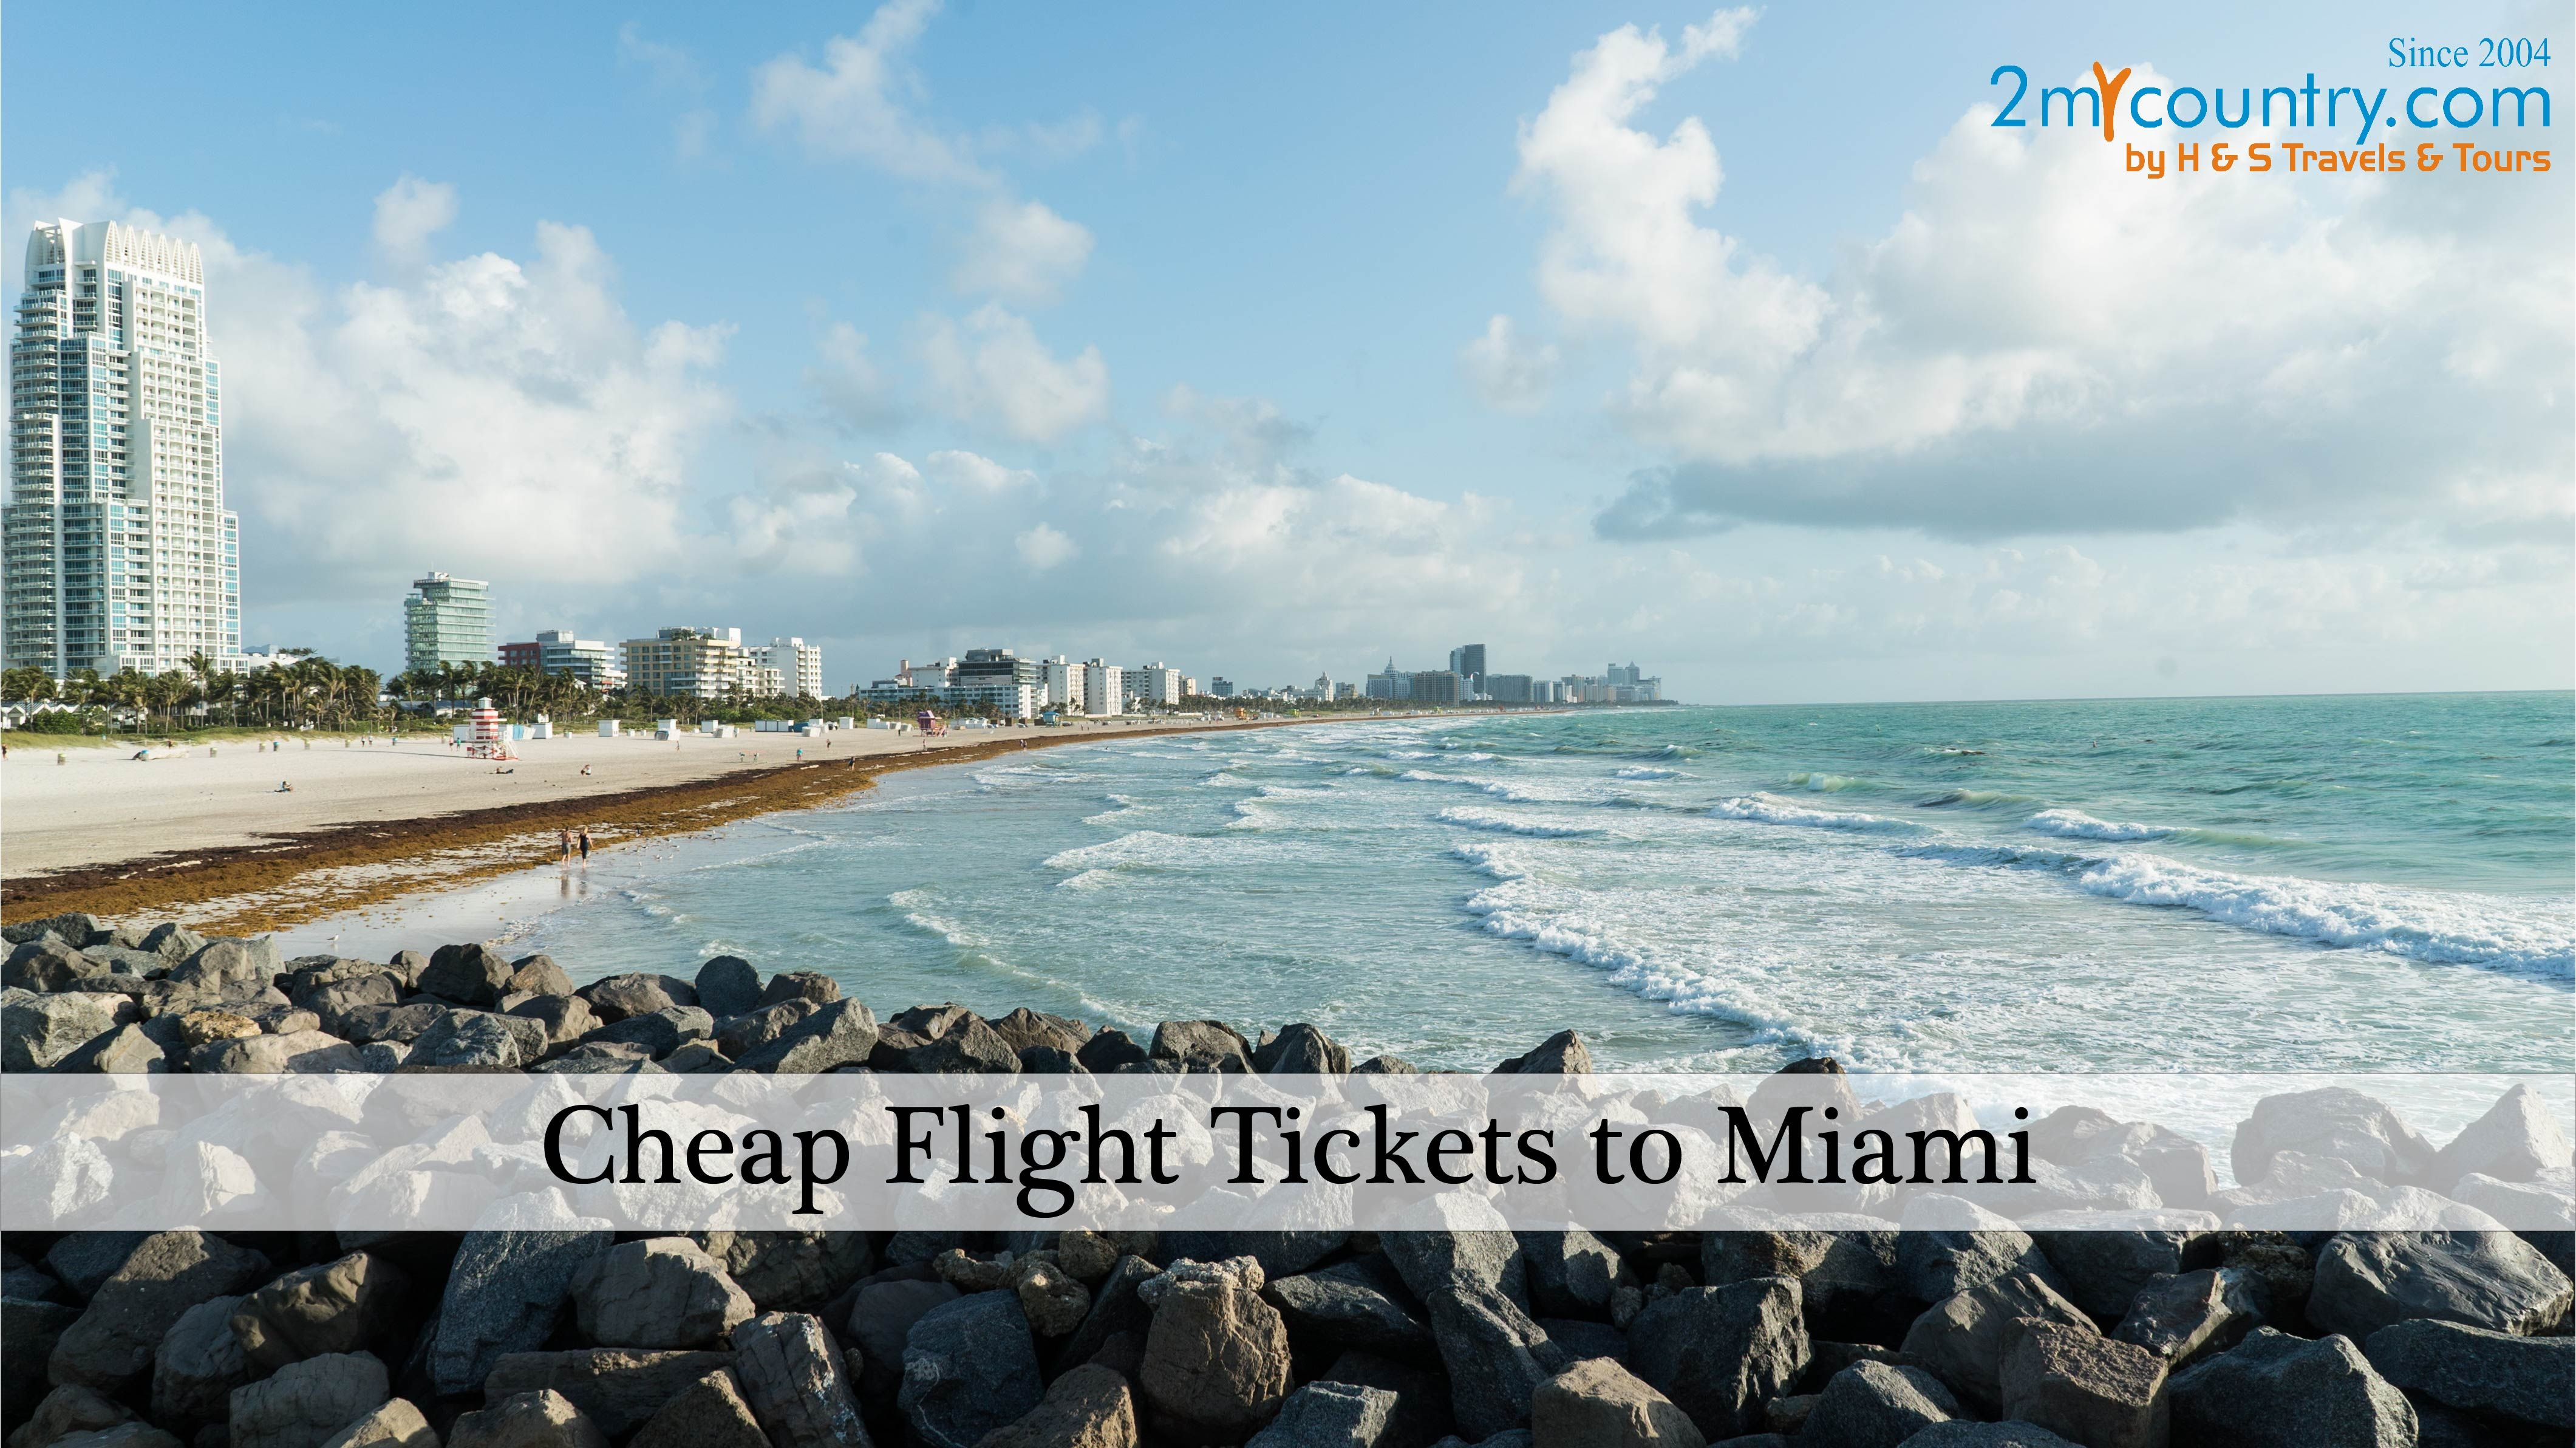 Book Cheap Flights to Miami: Search and compare airfare on 2mycountry to find... viewing hundred of tickets rates for a flight going to and from your destination.   #cheapflights #flighttickets #2mycountry #ticketbooking #airfare #travelphoto #tourism #travelphotography #travelblogger #cheapairline #internationalflights #cheapairfare #airlinetickets #flightdeals